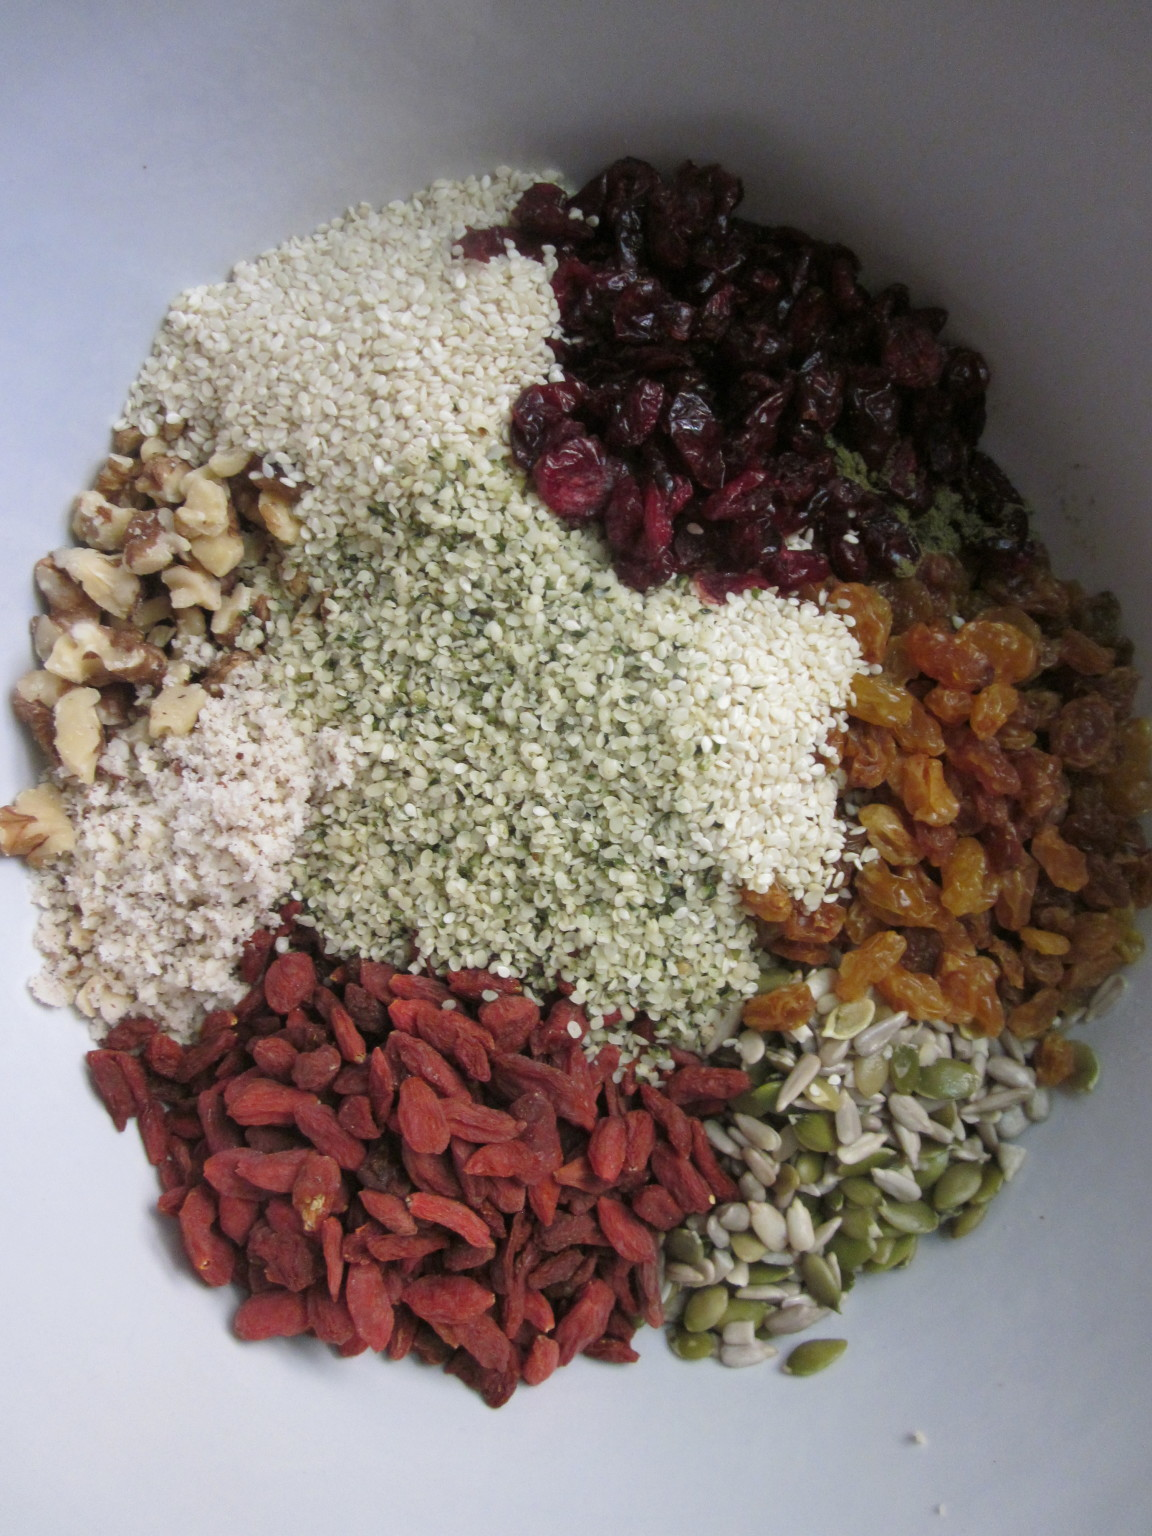 ... Protein Fruit Nut and Seed Bar Recipe fruit nuts and seeds in bowl